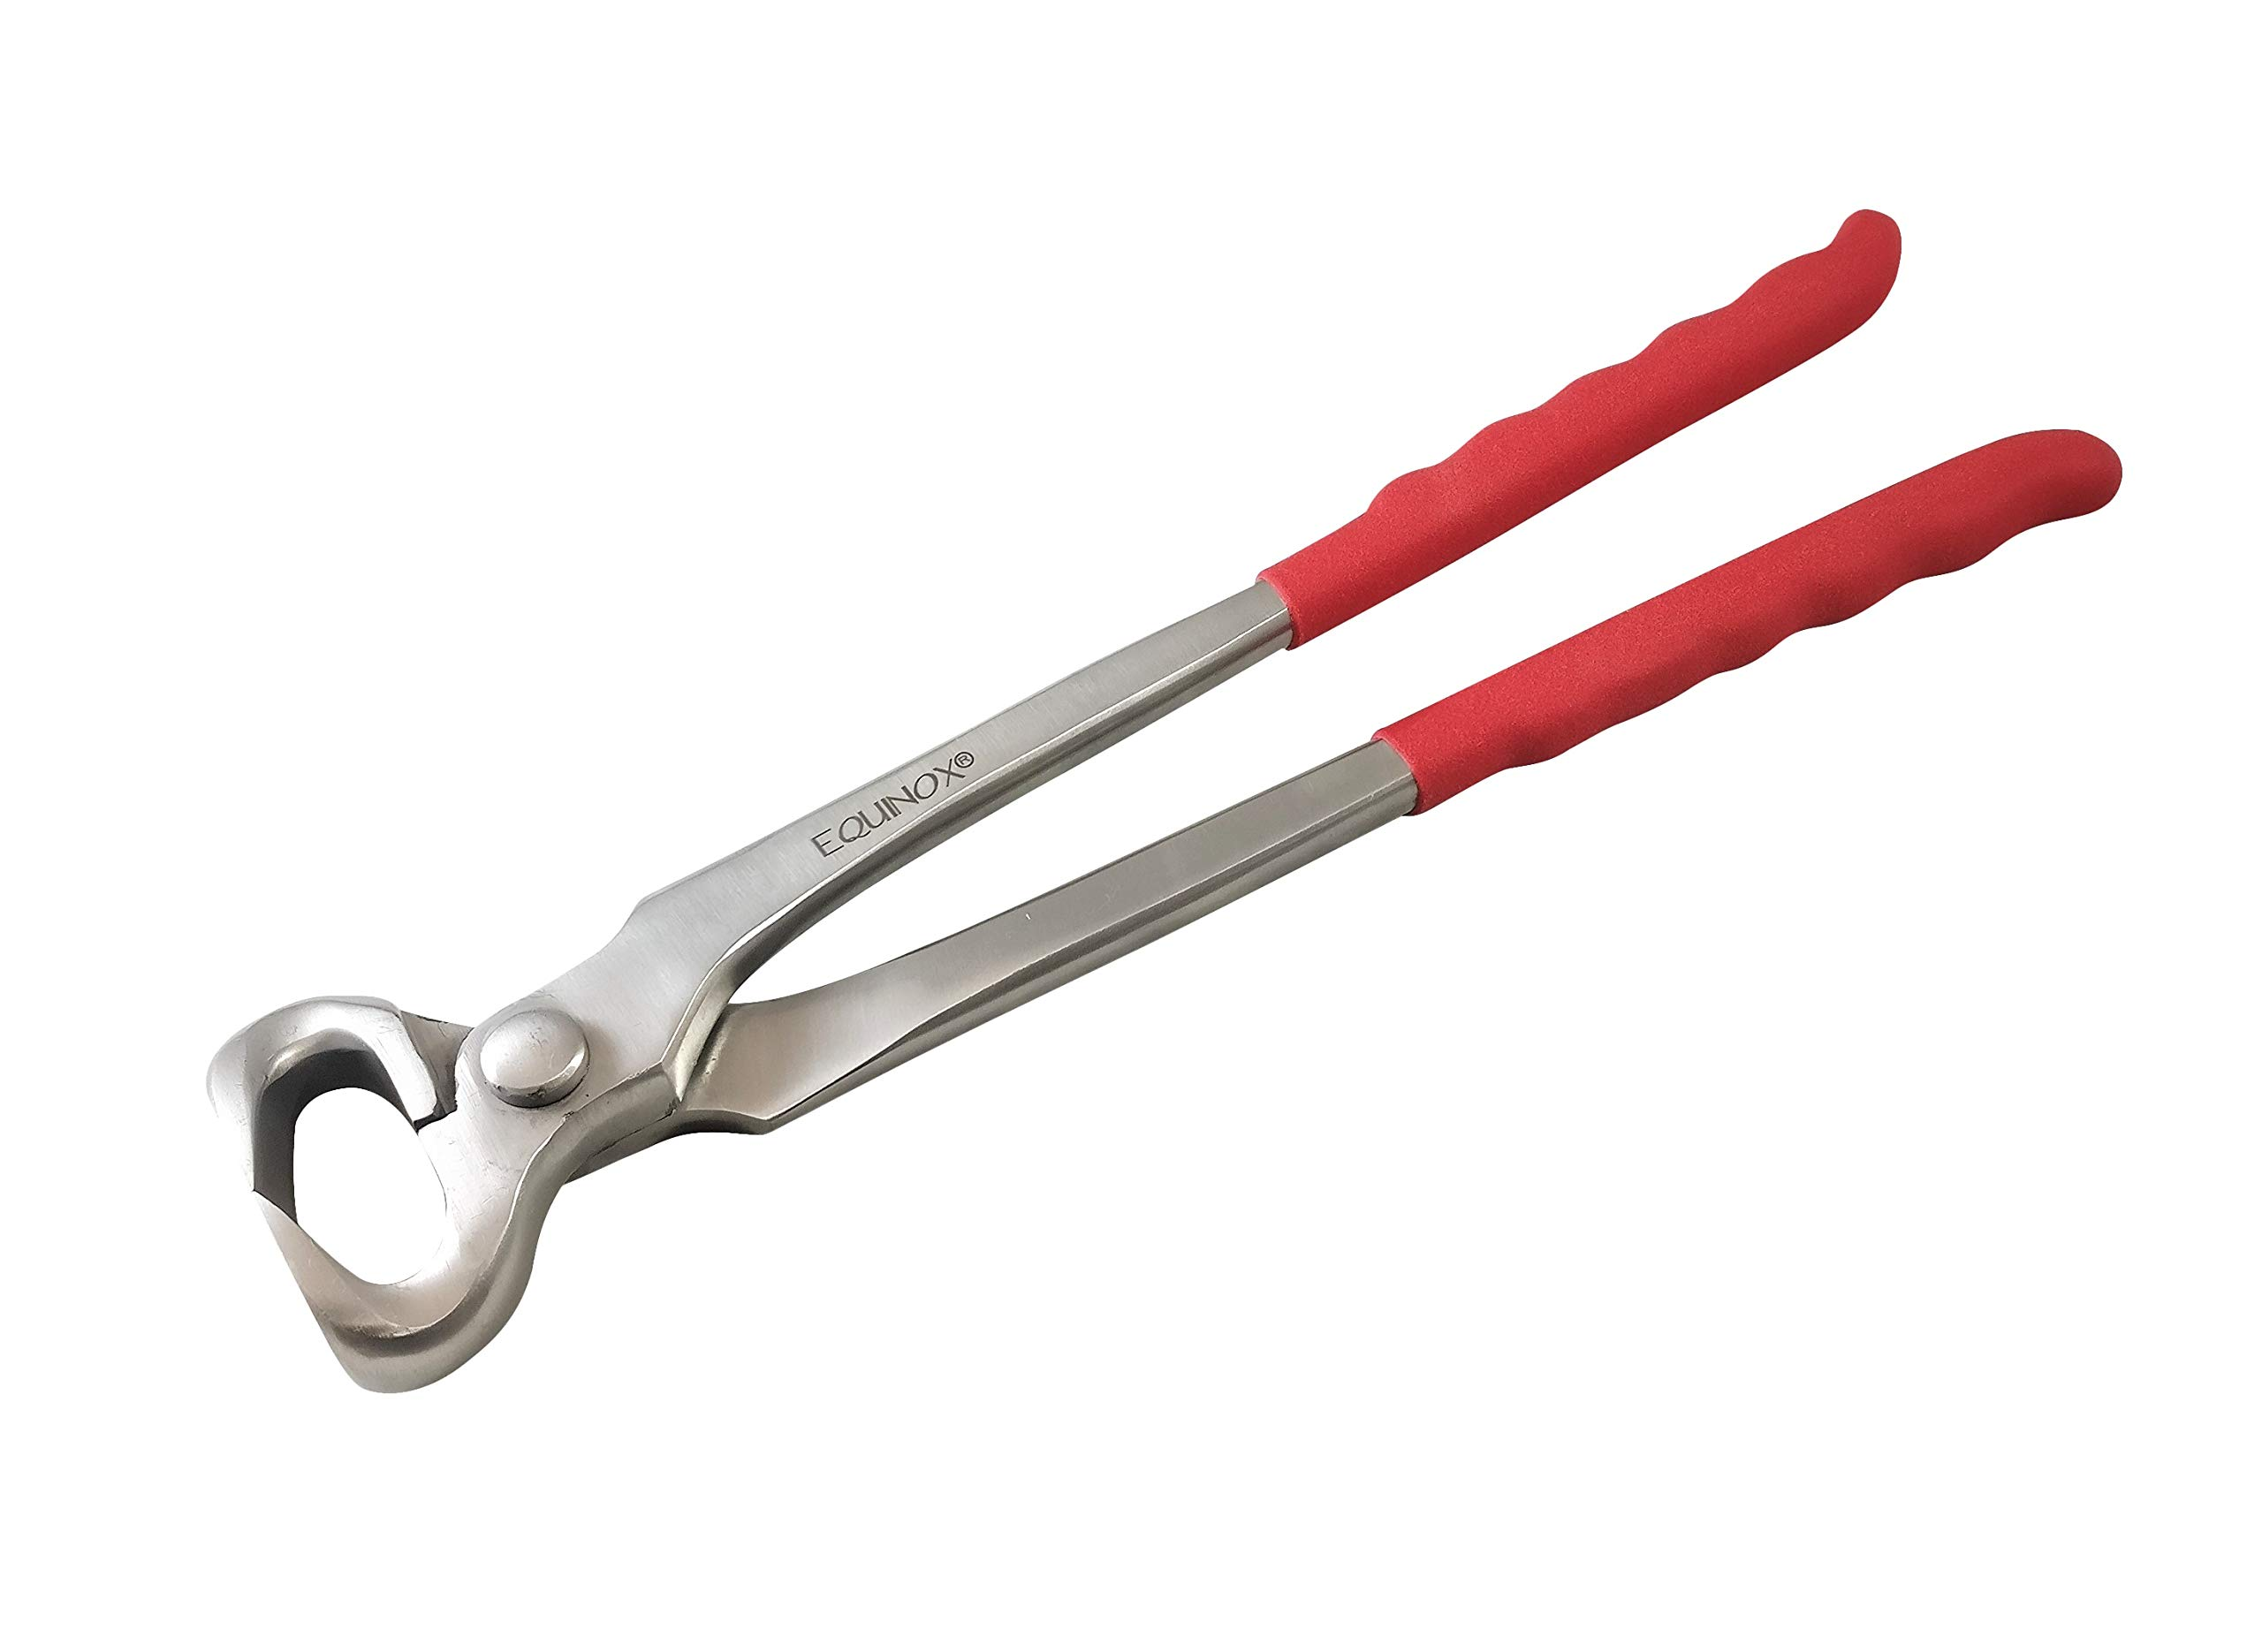 SiS EQUINOX Farrier Hoof Nipper Trimmer Foal Pony Horse 12'' Tool Farrier Tip Inserted Jaws